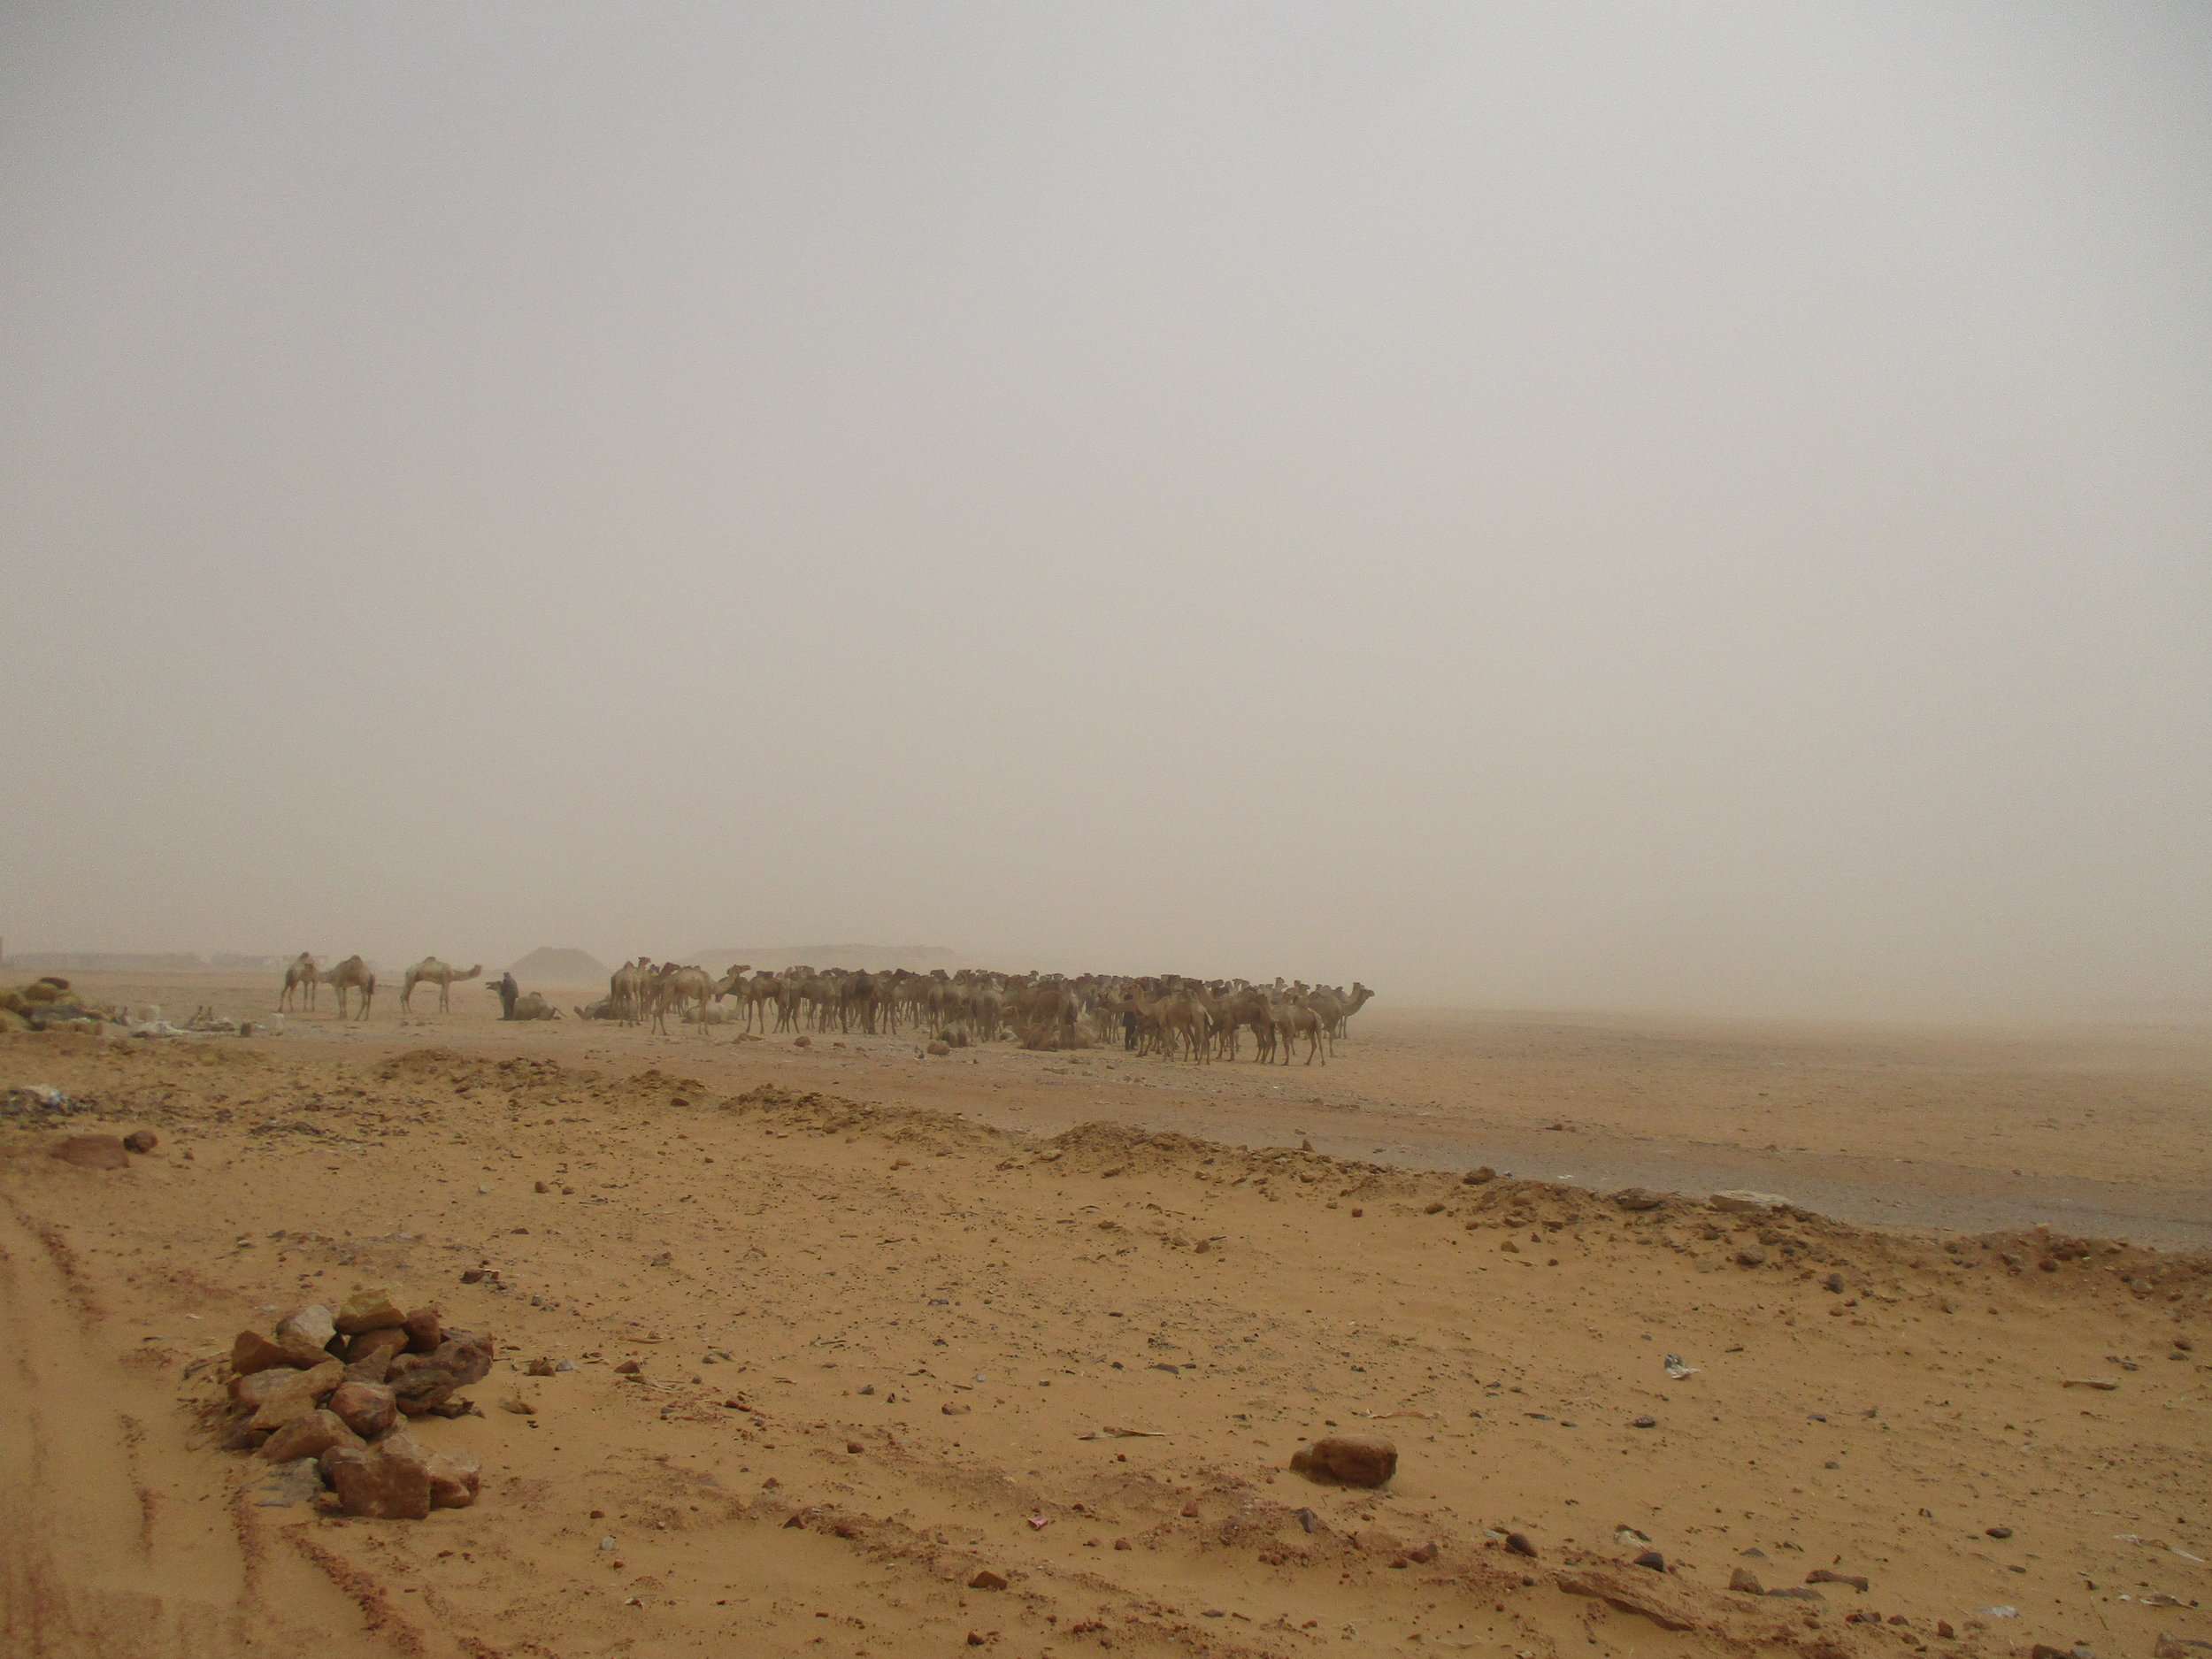 A herd of camels in the sand storm.